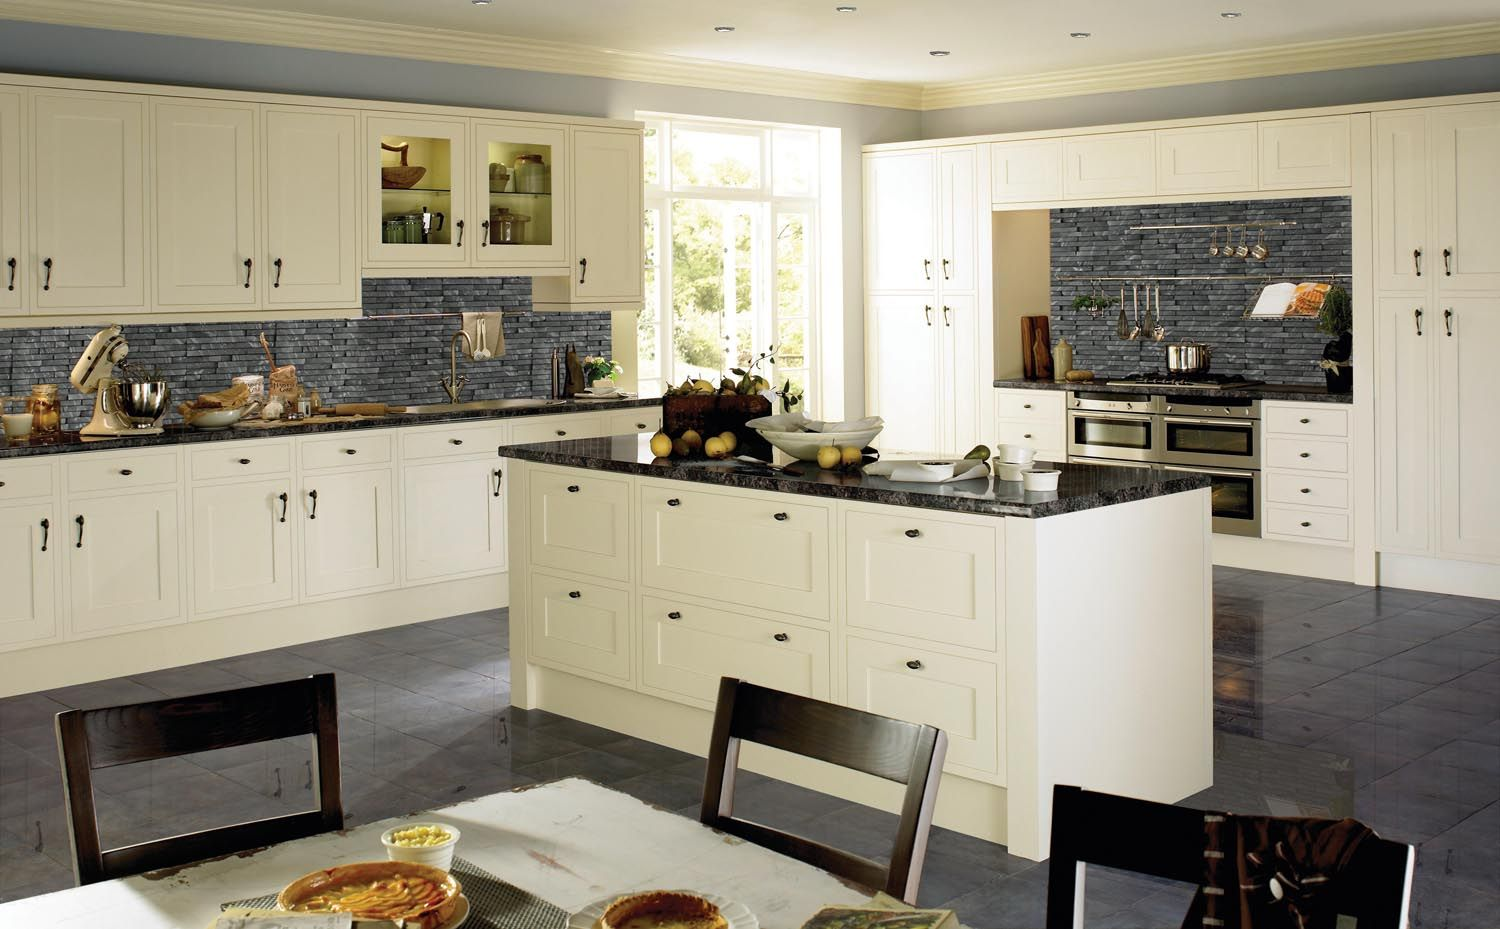 Kinder Oyster | Introducing Island Kitchens... Colonial Kitchens ...